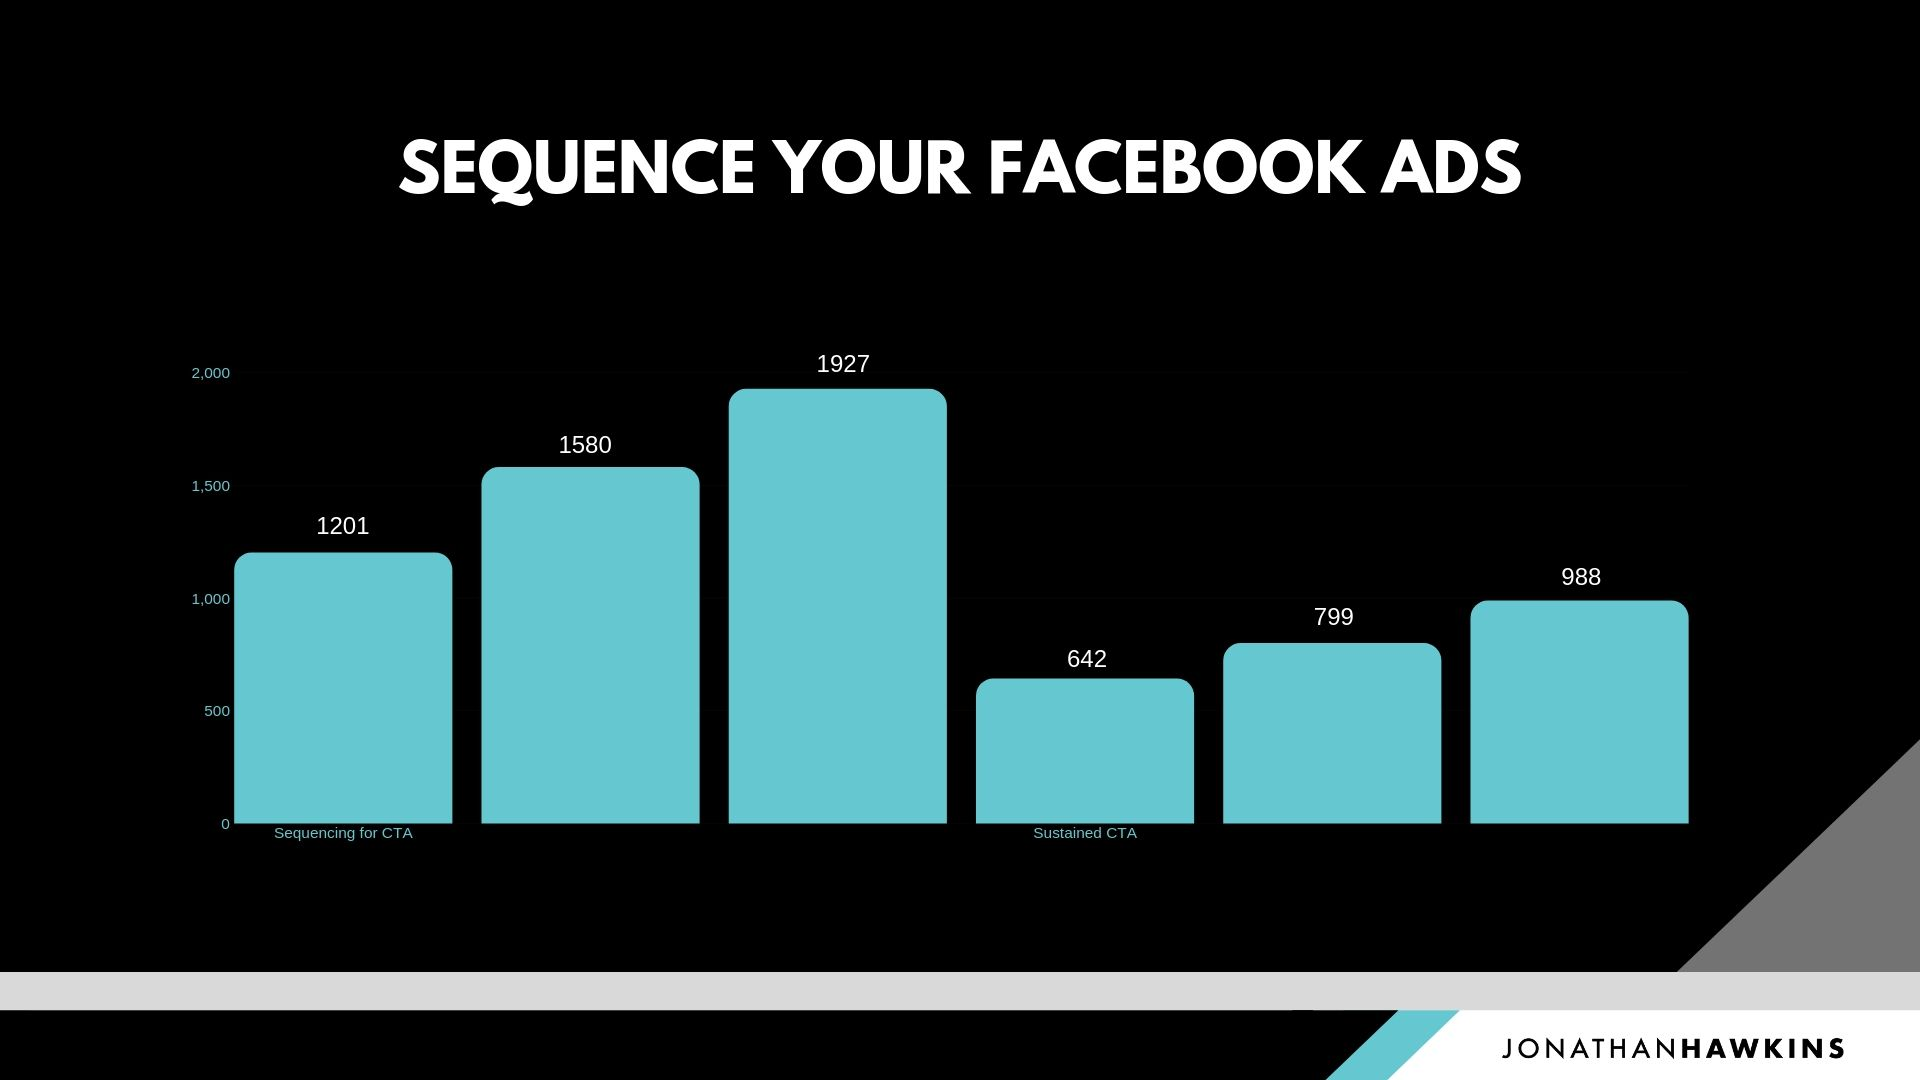 Sequence Your Facebook Ads